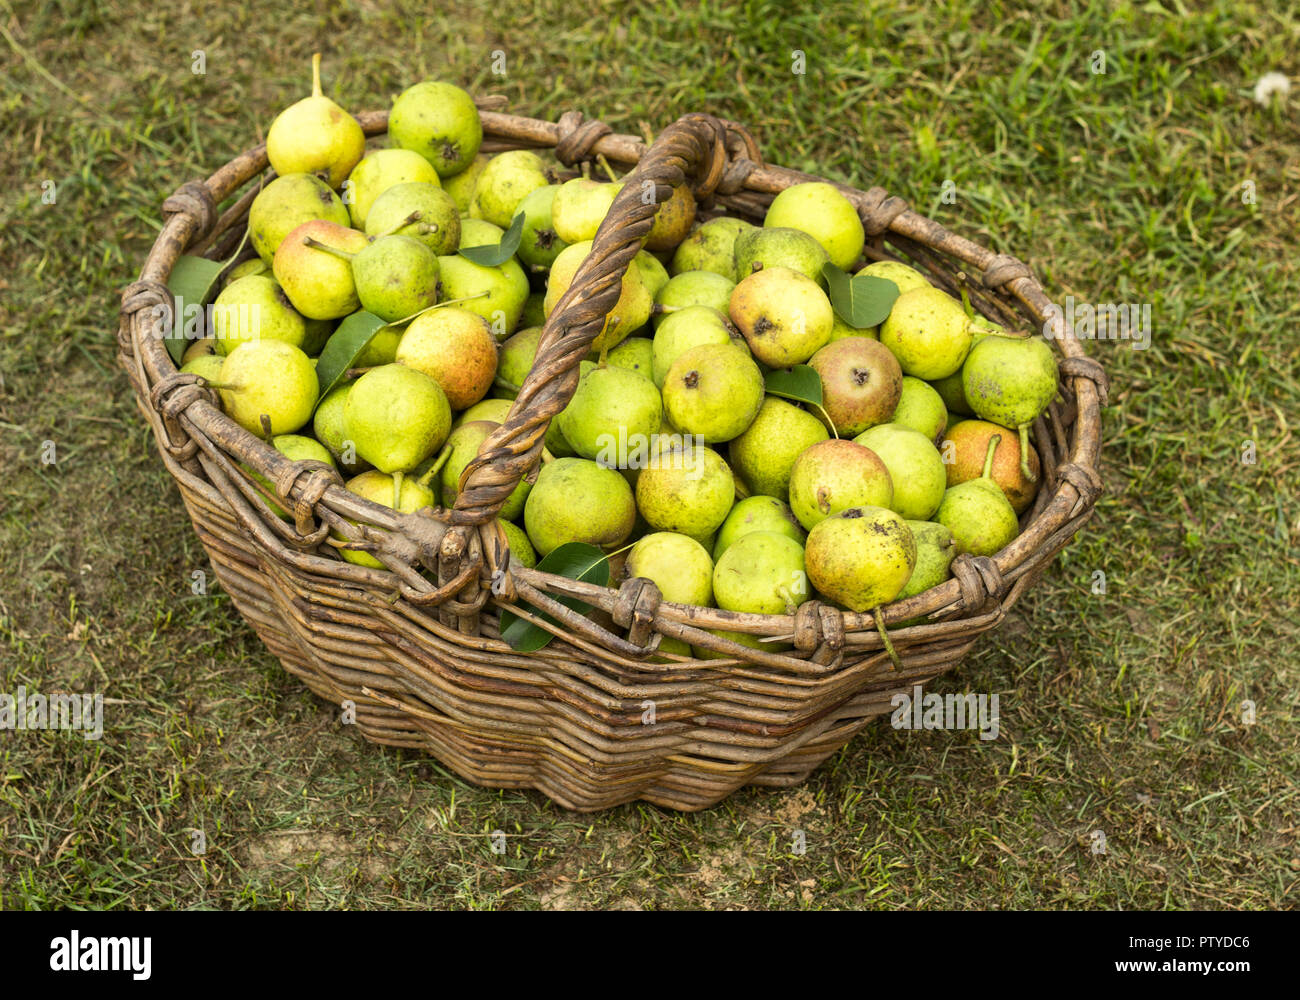 Wicker basket full with pears standing on the grass, fruit, punchbag - Stock Image